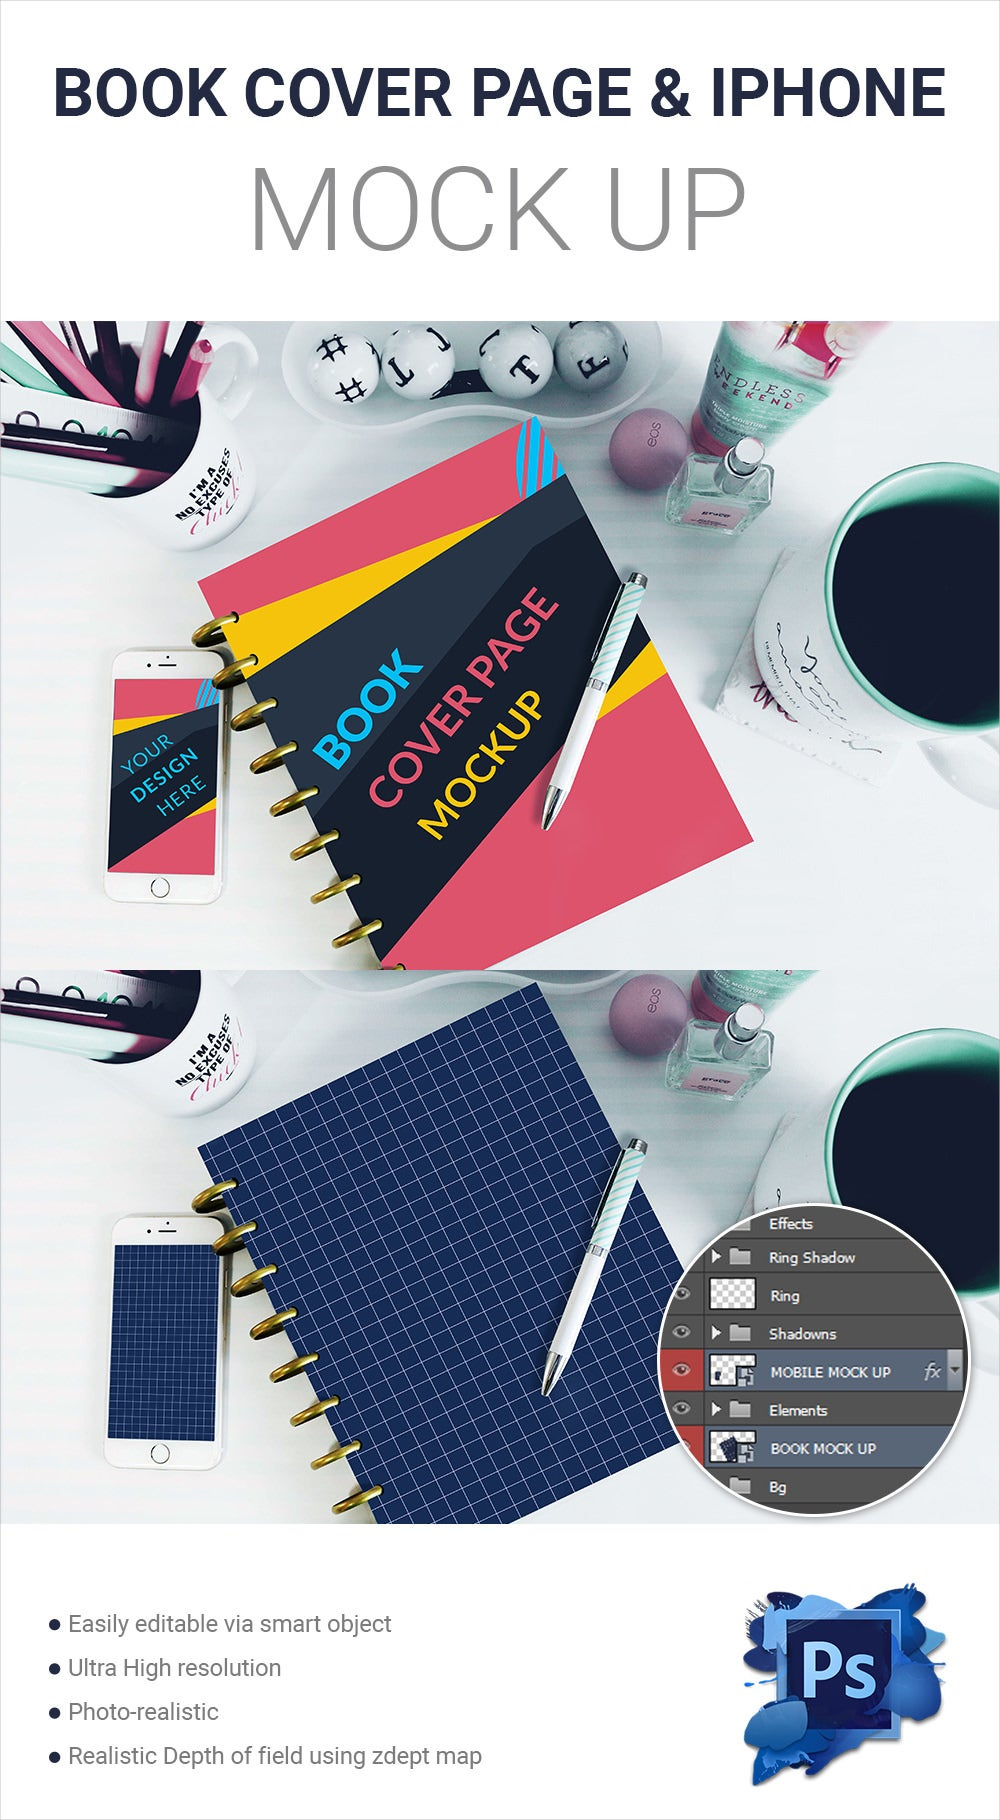 Book Cover Page U0026 IPhone Mockup Free Download  Ms Word Cover Page Templates Free Download